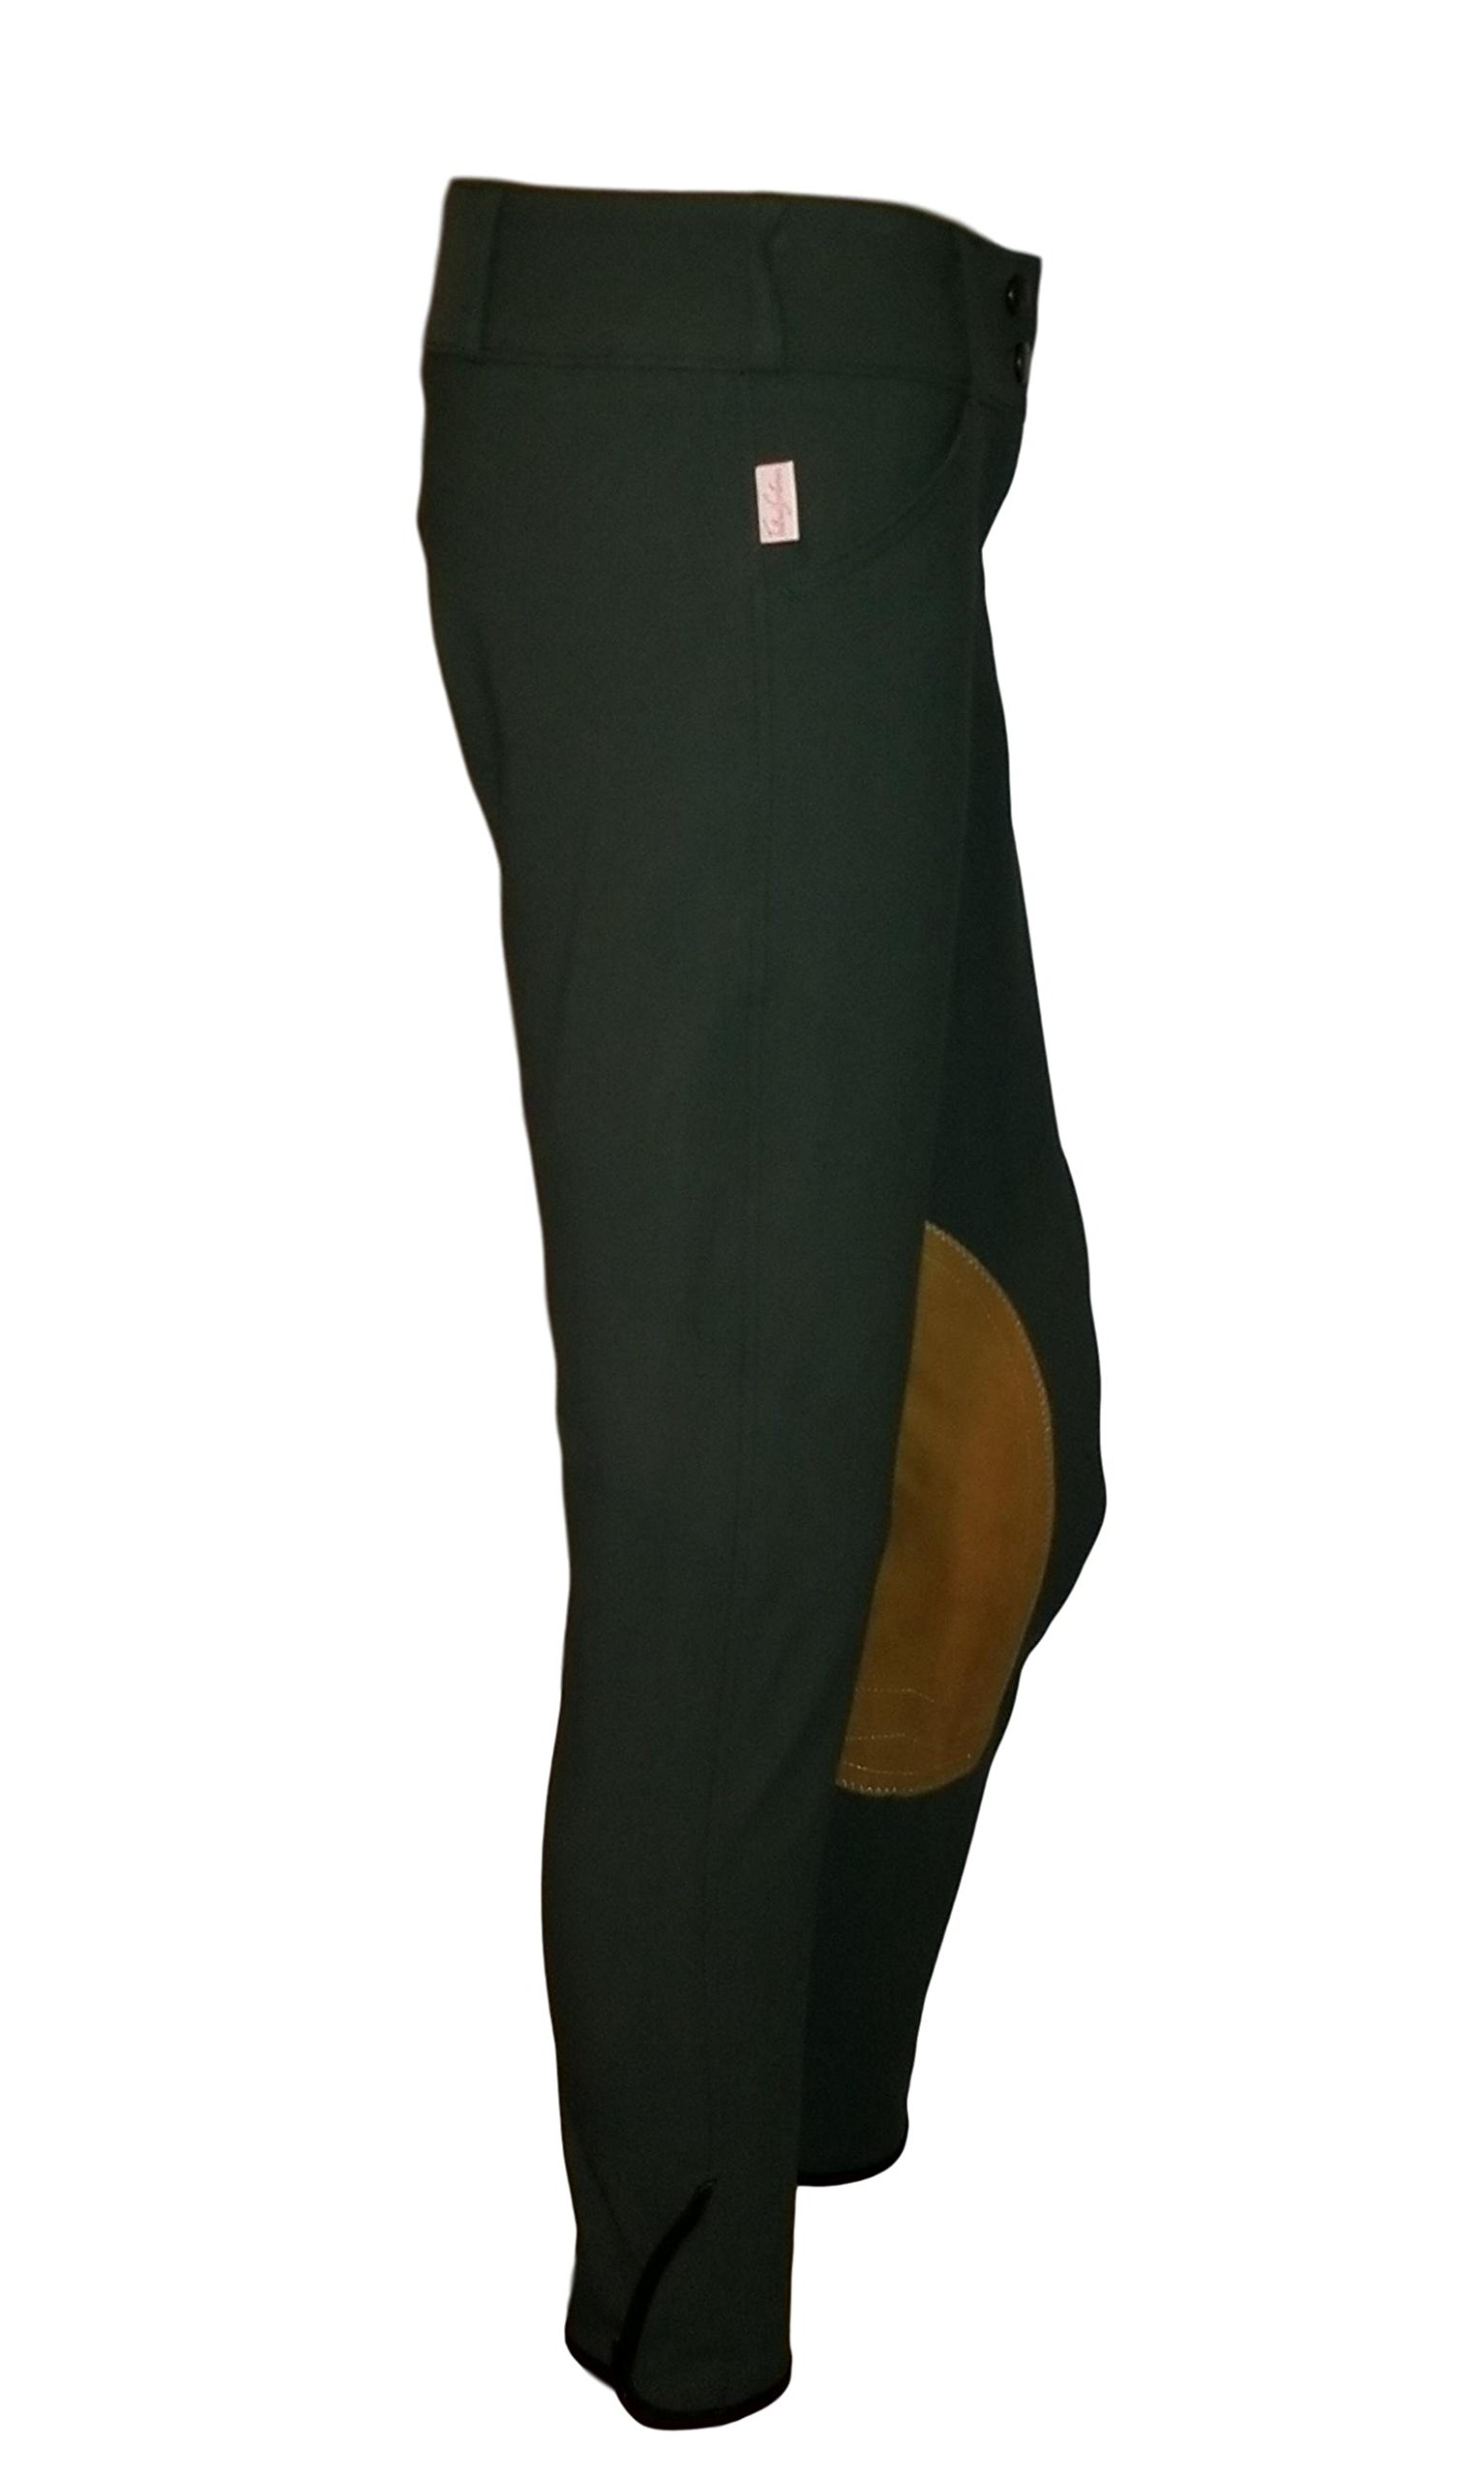 Tailored Sportsman Ladies Trophy Hunter Mid Rise Front Zip 1963 (Black Forest/Tan, 32R)